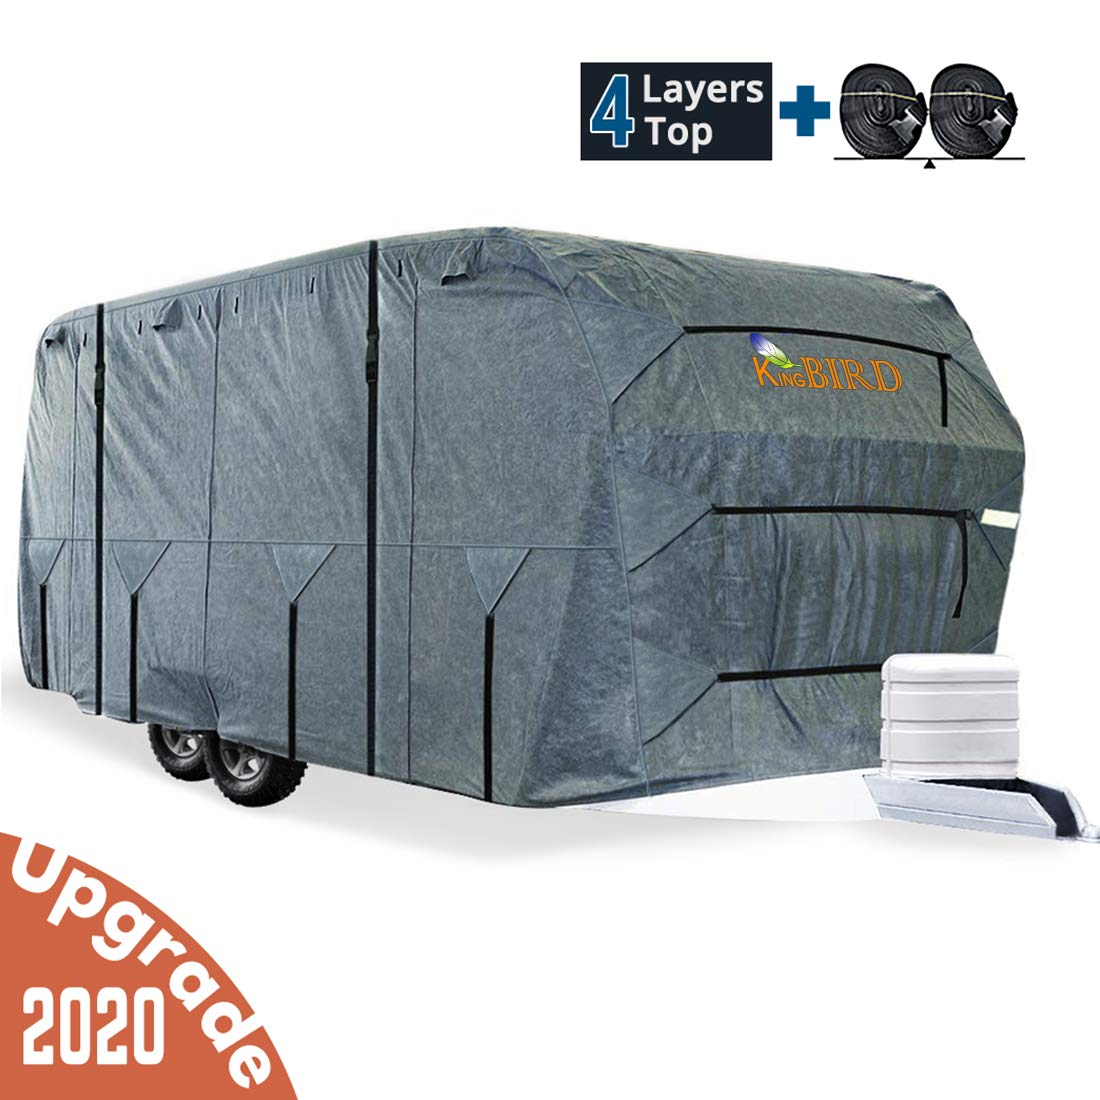 KING BIRD Extra-Thick 4-Ply Top Panel & Extra 2Pcs Reinforced Straps, Deluxe Camper Travel Trailer Cover, Fits 24'- 27' RV Cover -Breathable Water-Repellent Anti-UV with Storage Bag&Tire Covers